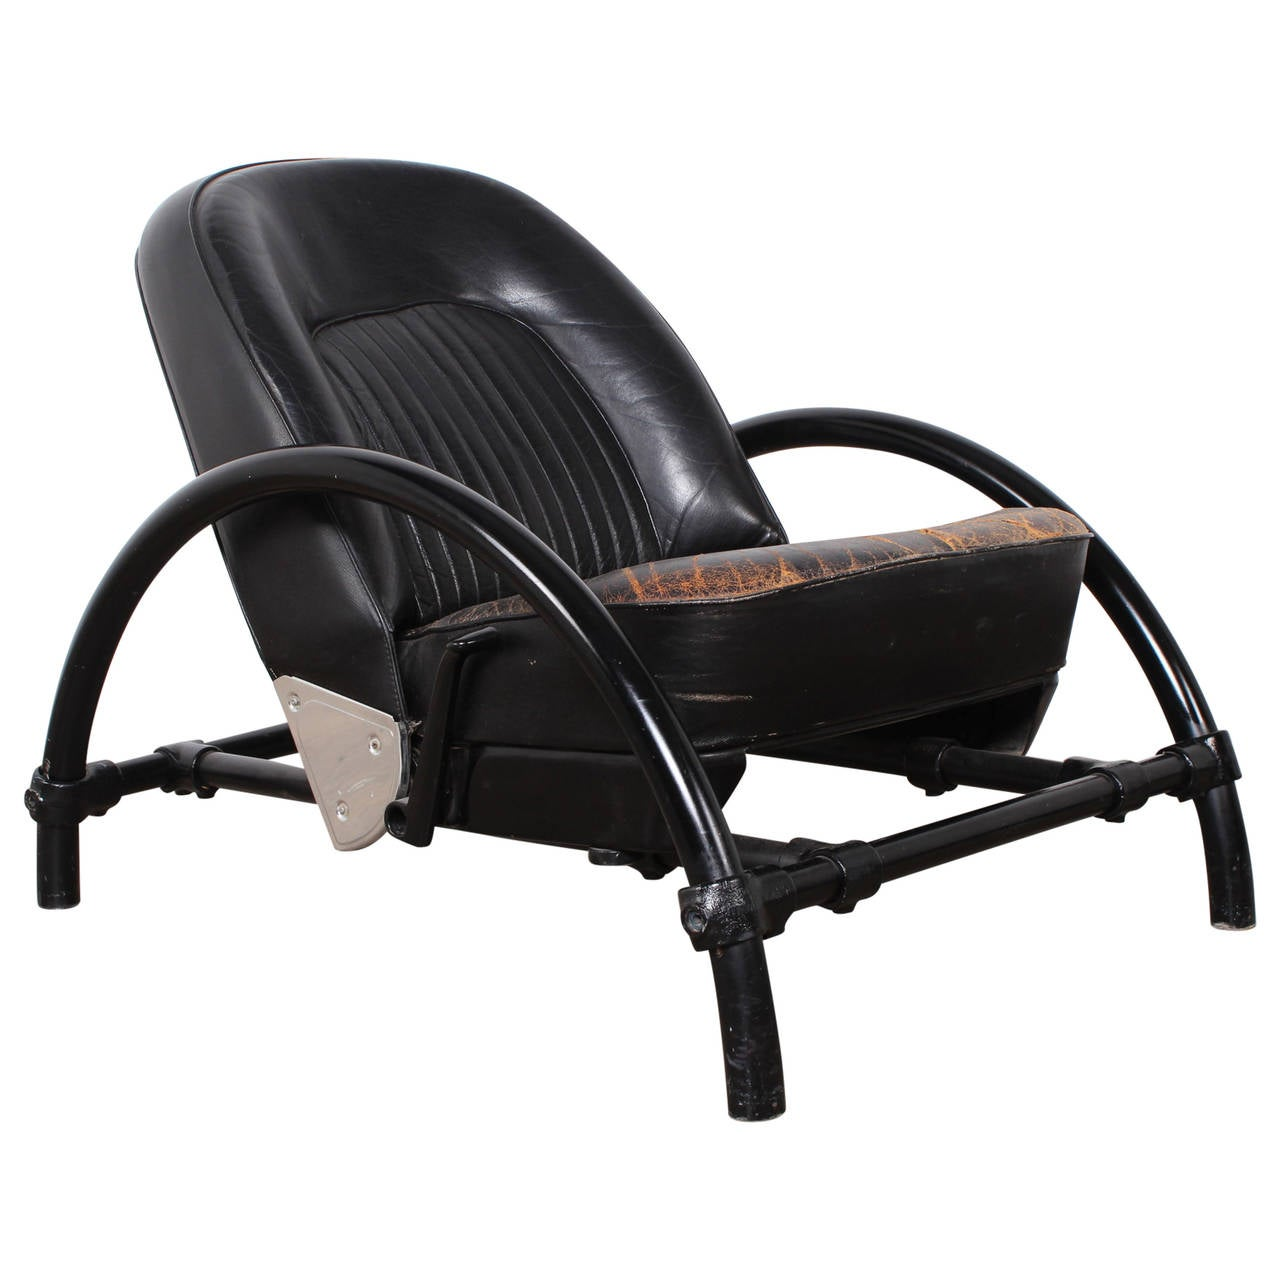 Quot Rover Quot Chair By Ron Arad At 1stdibs